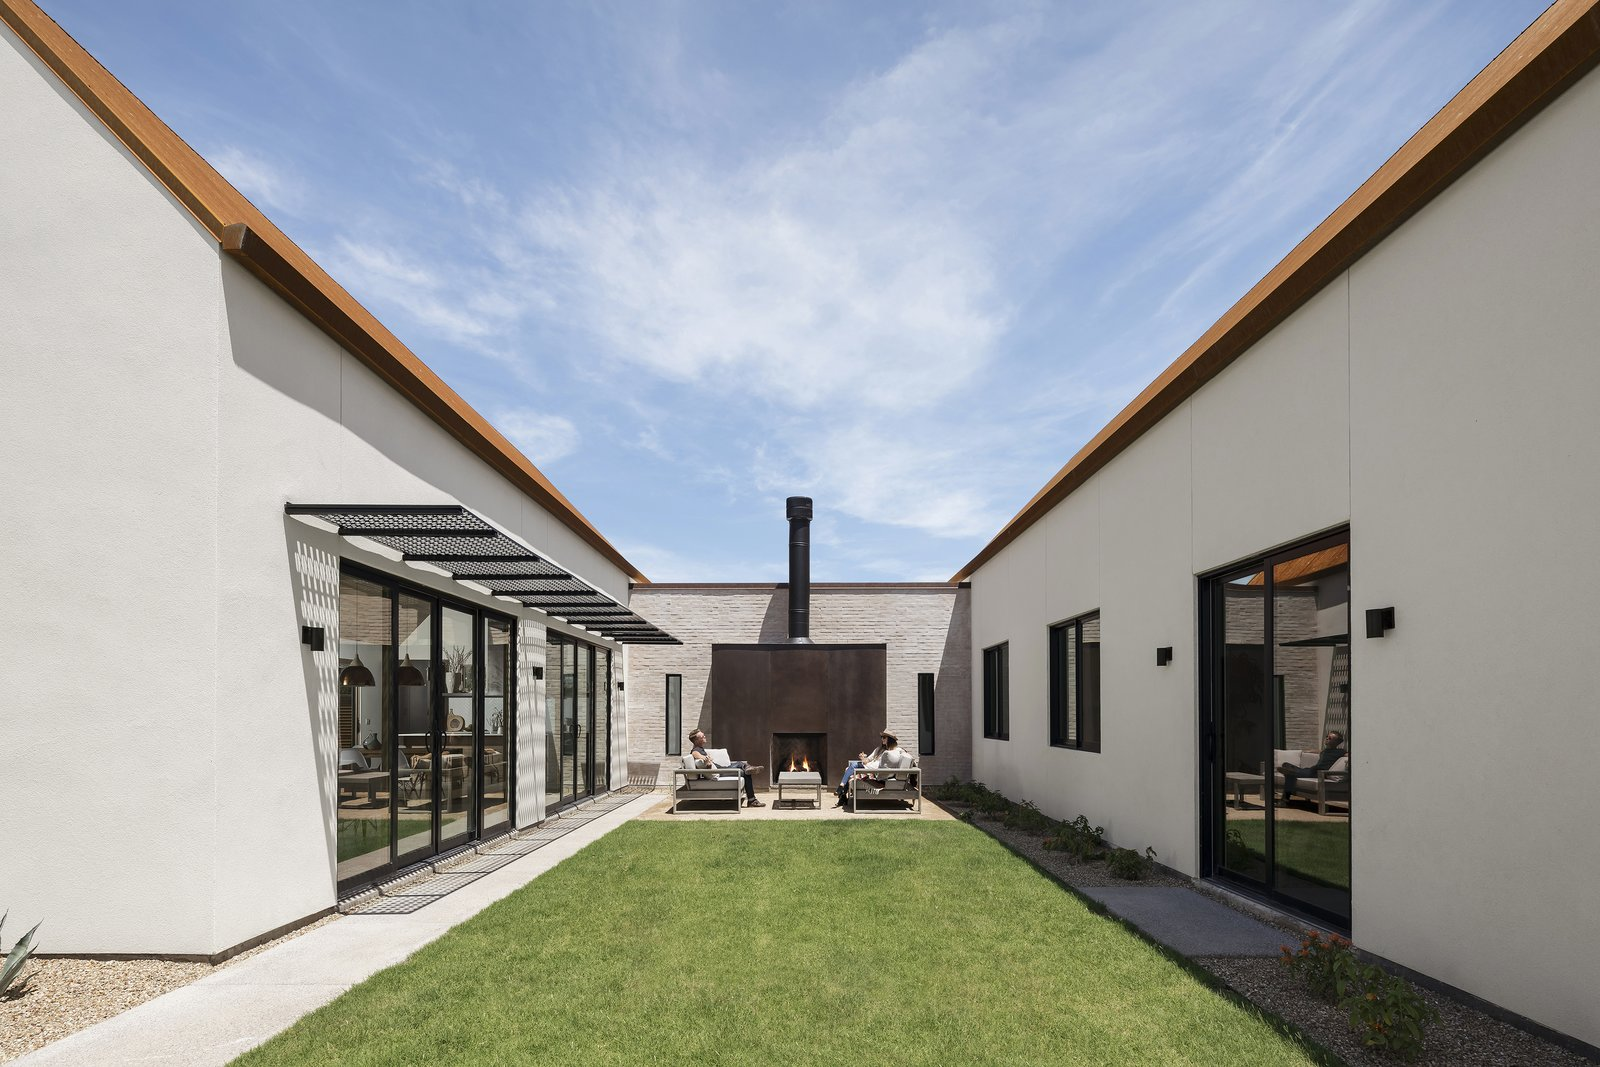 Central Courtyard anchored by a fireplace with the vaulted great room on the left, and bedroom wing on the right.